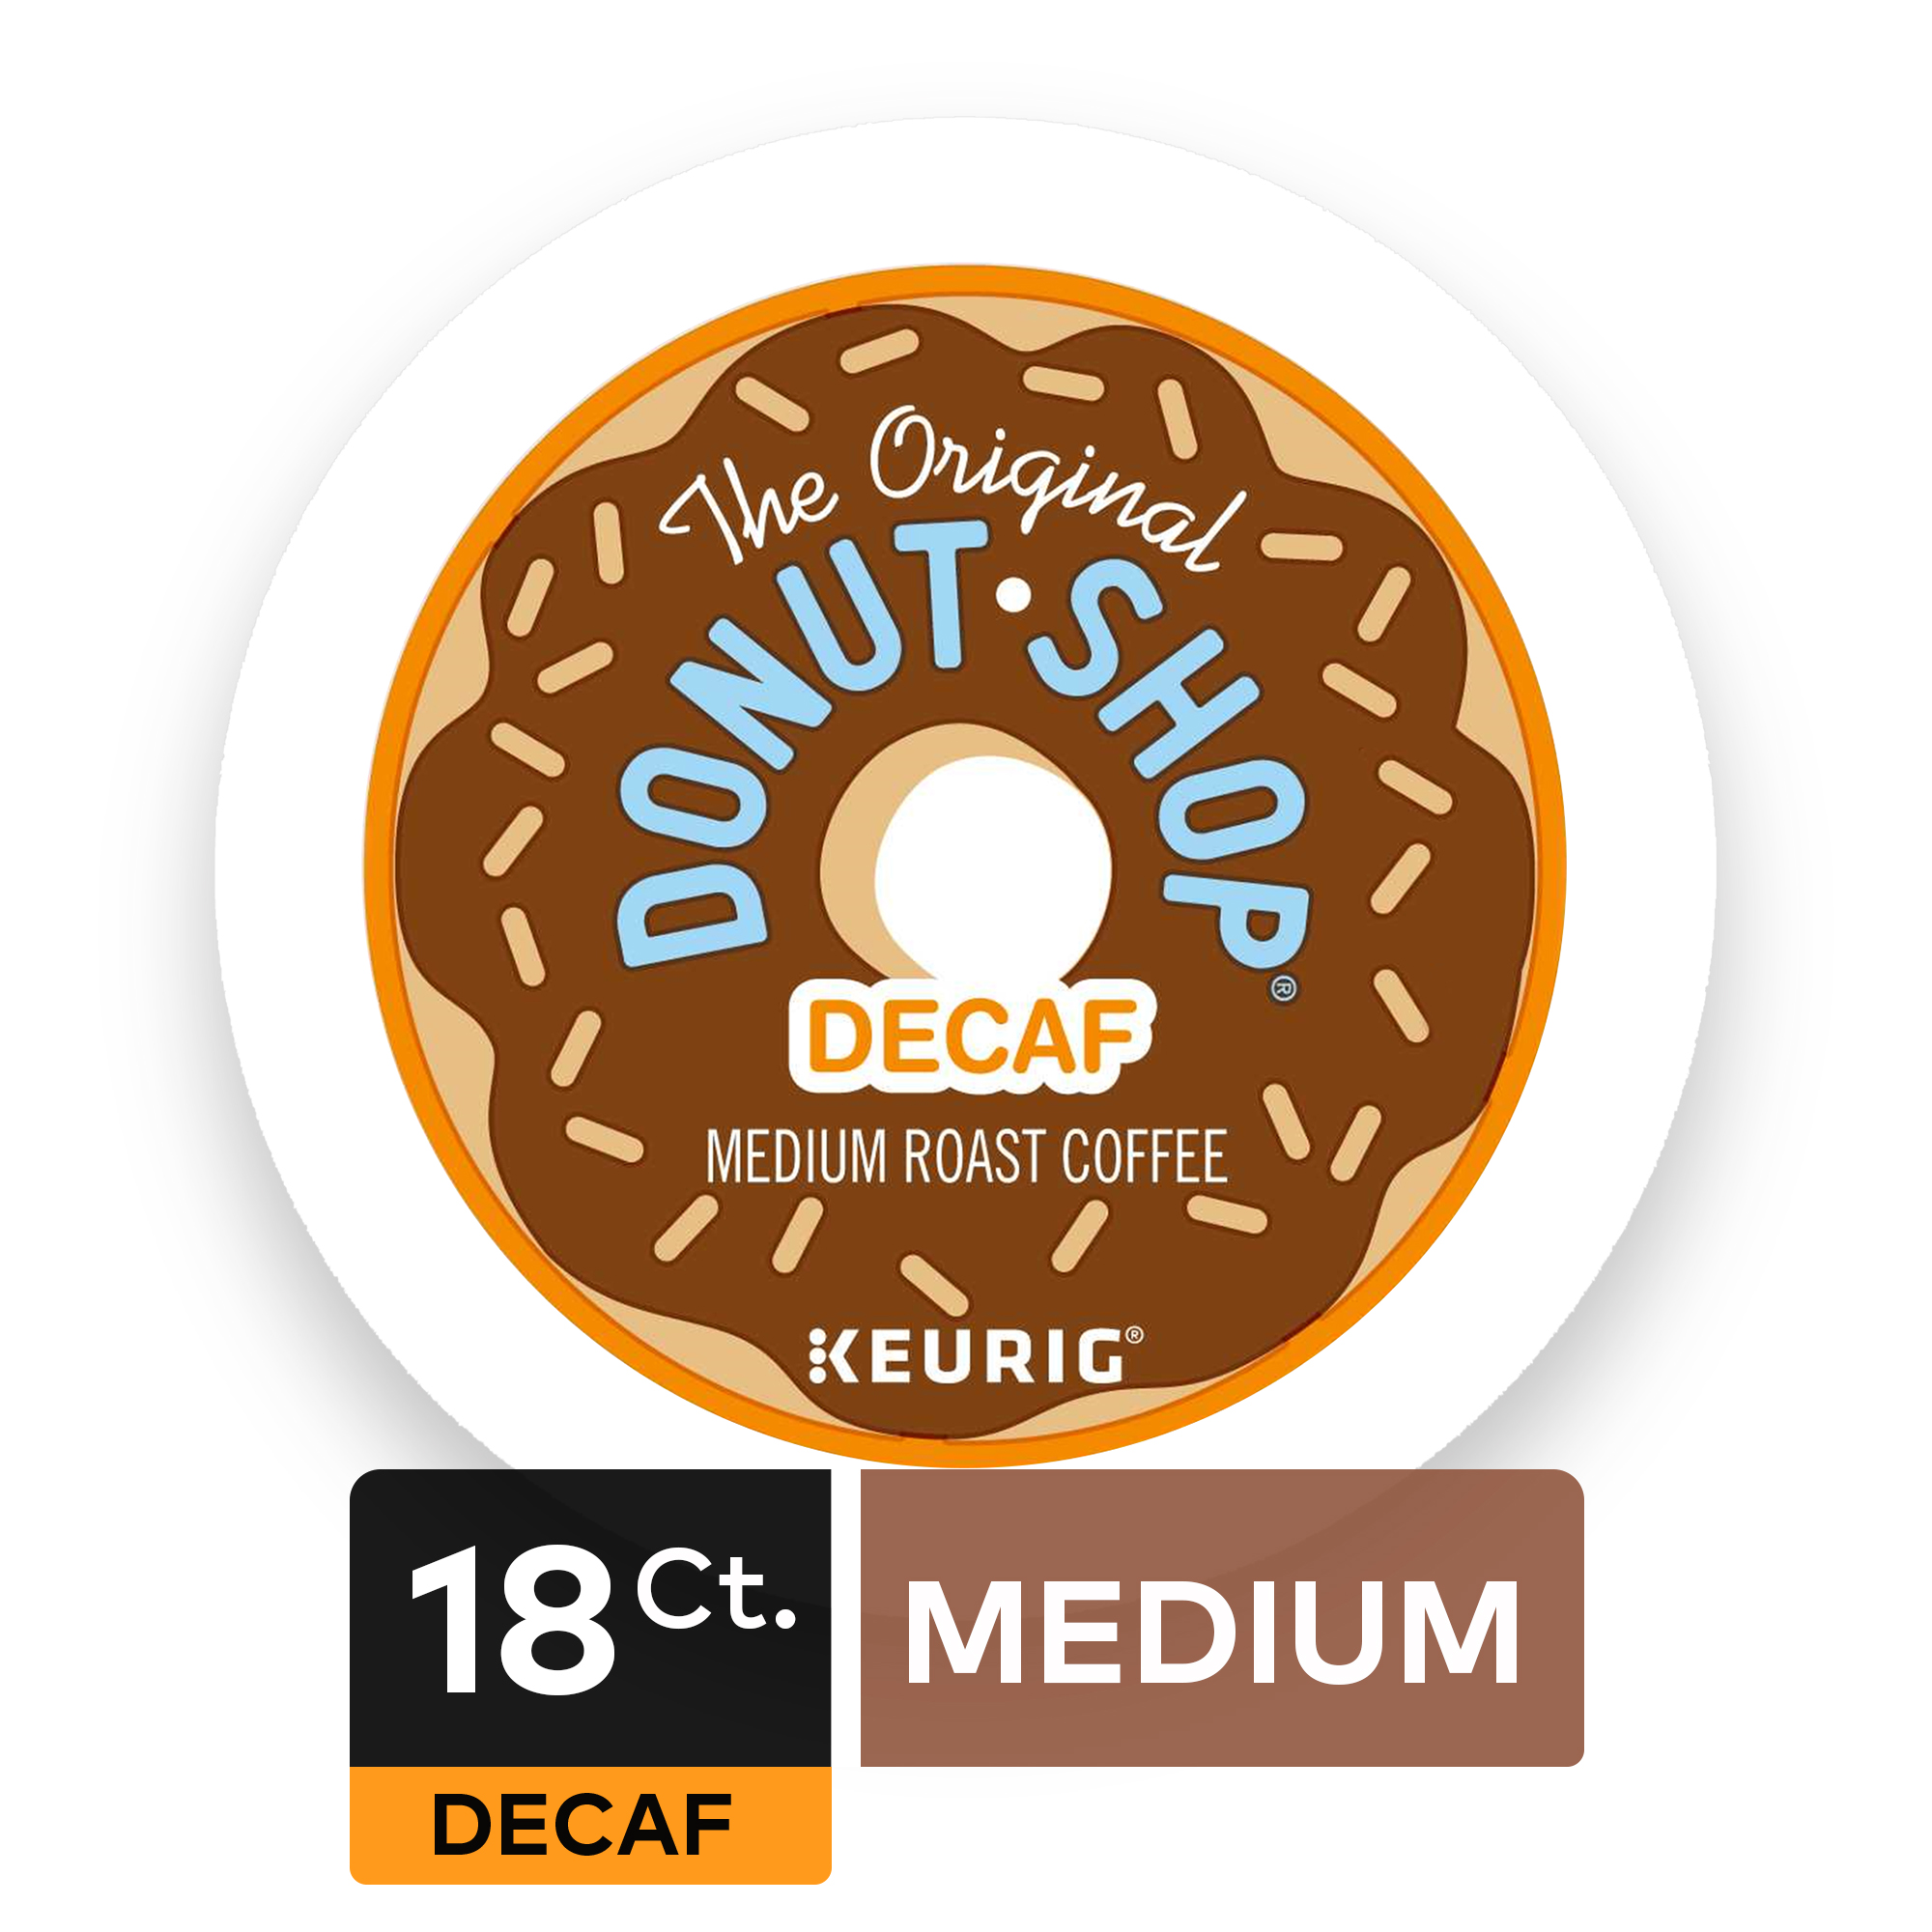 The Original Donut Shop Decaf Keurig Single-Serve K-Cup Pods, Medium Roast Coffee, 18 Count